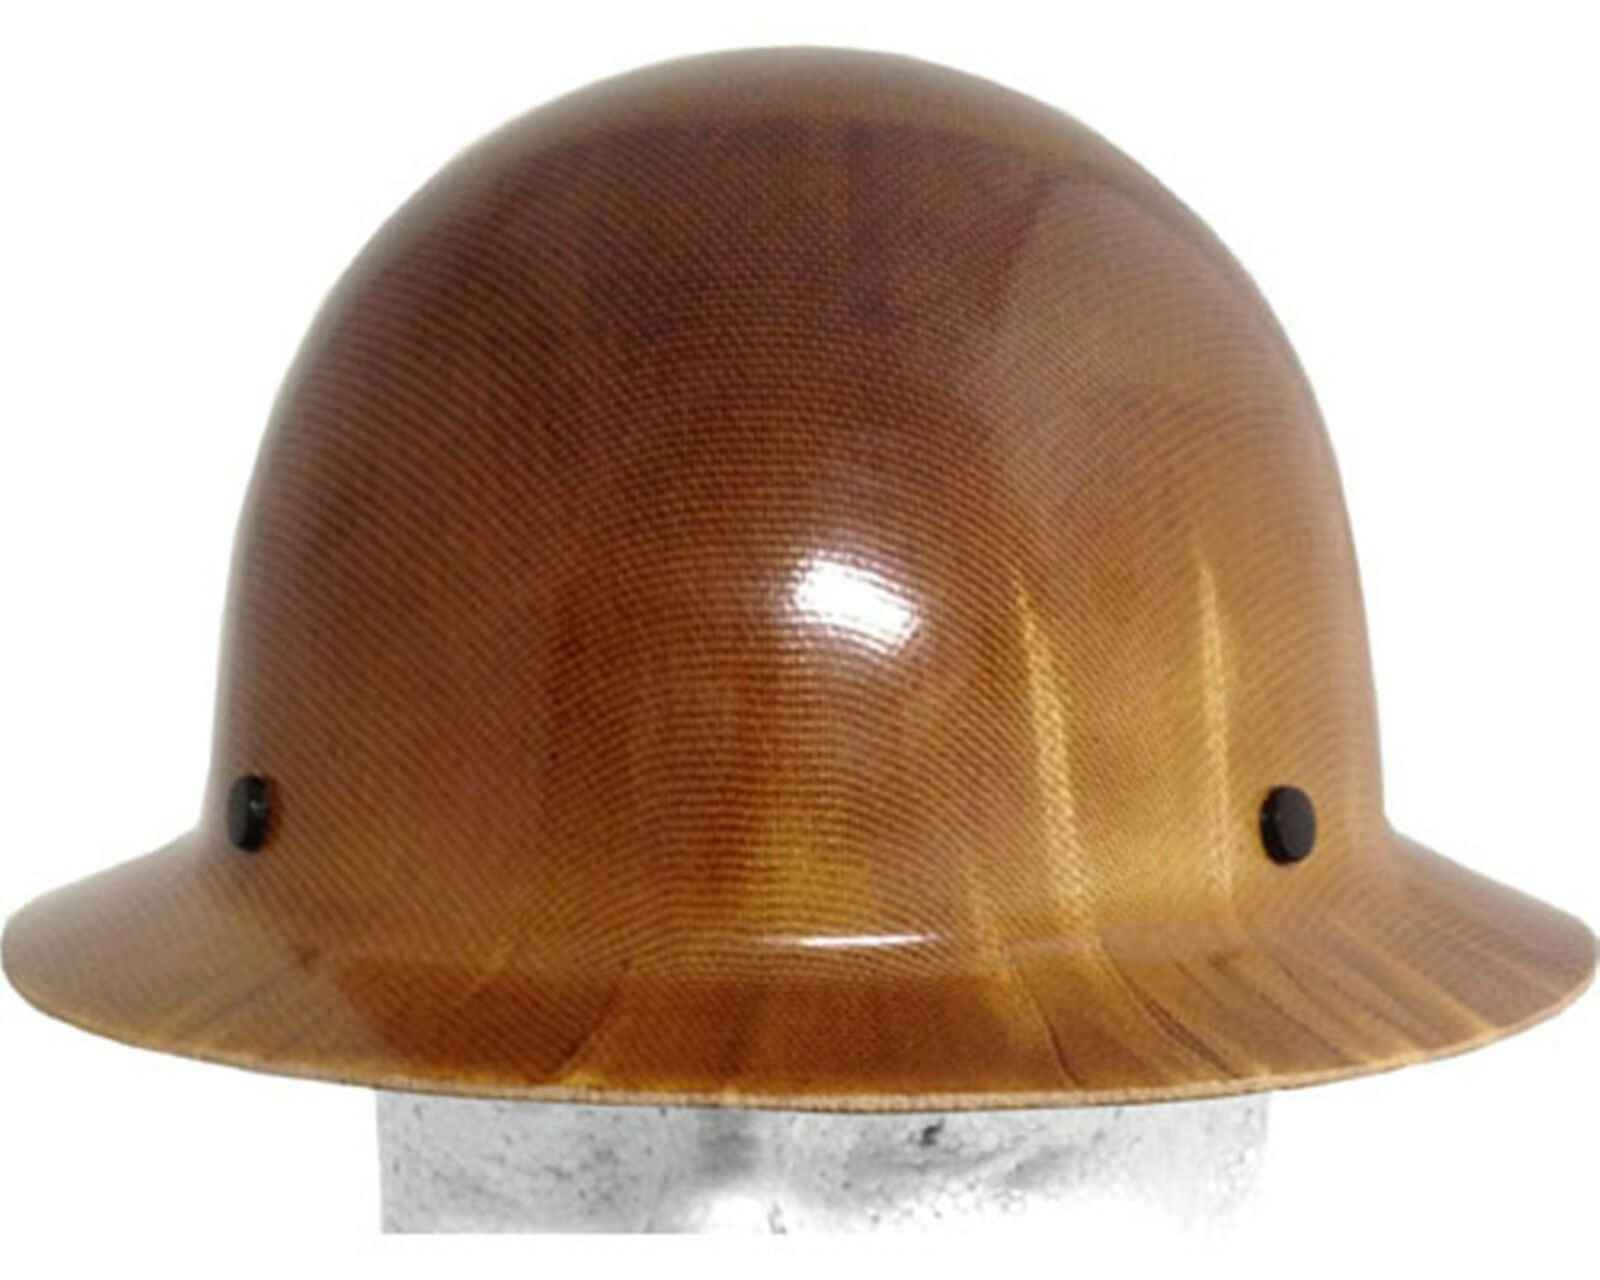 Msa Skullgard Fiberglass Fb Hard Hat With Ratchet Or Pin